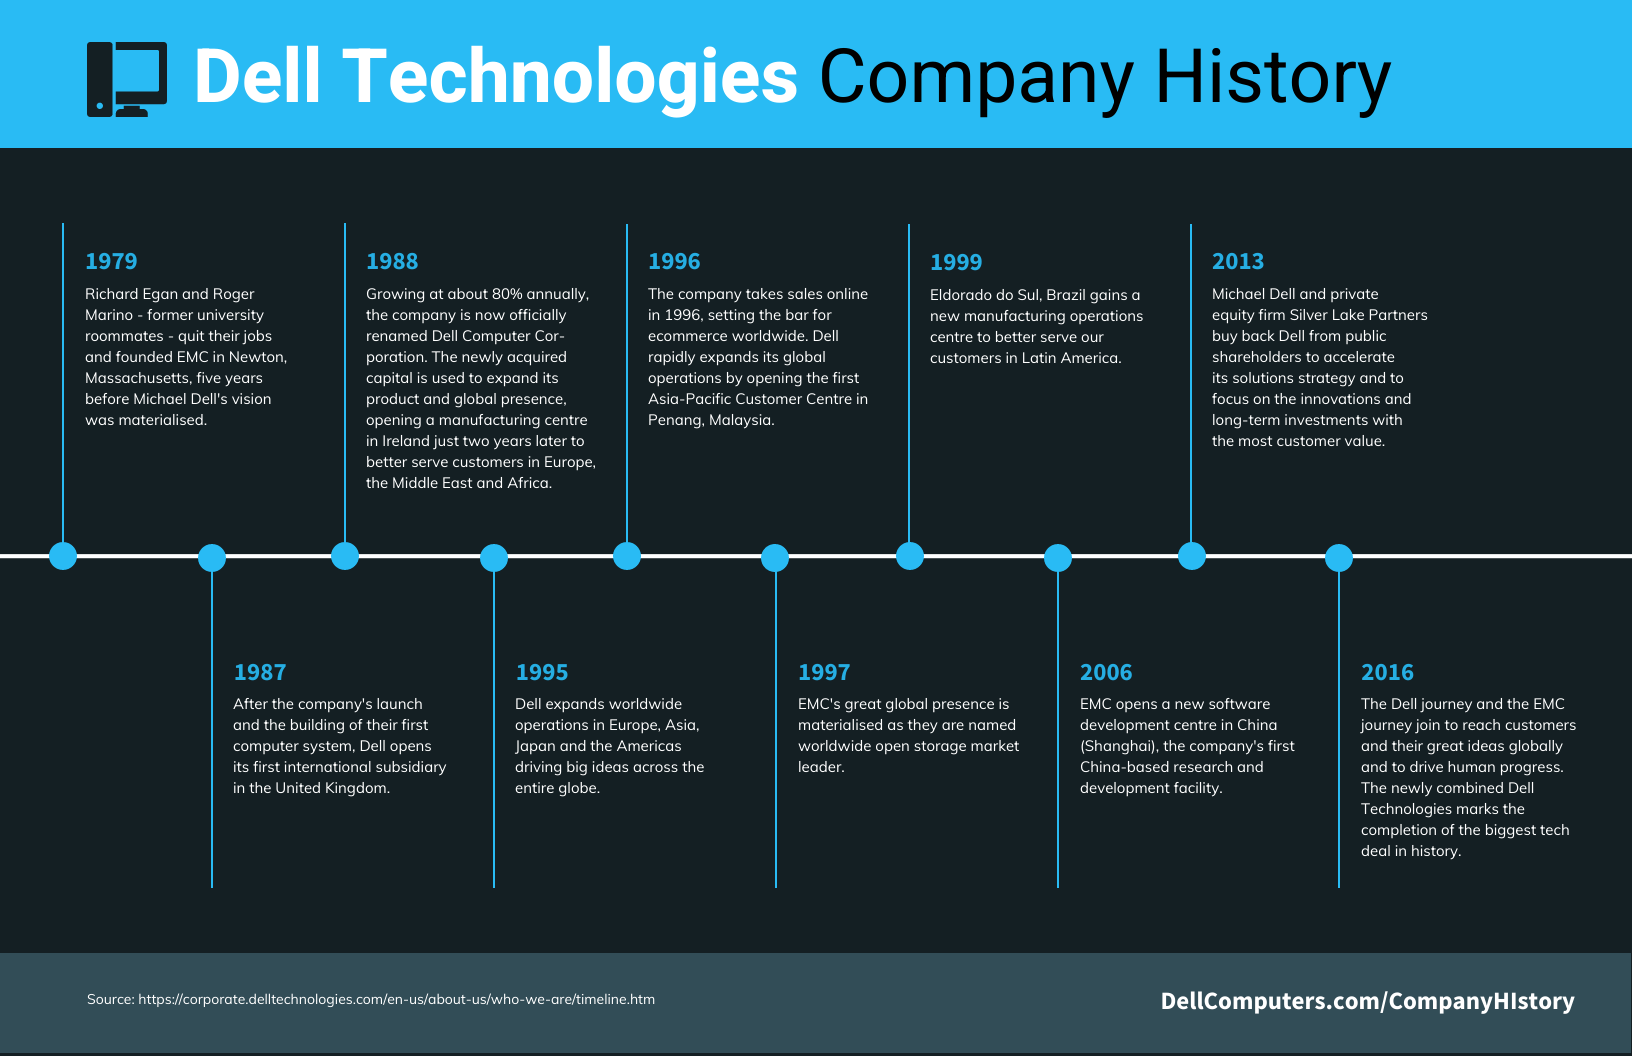 company history timeline infographic template